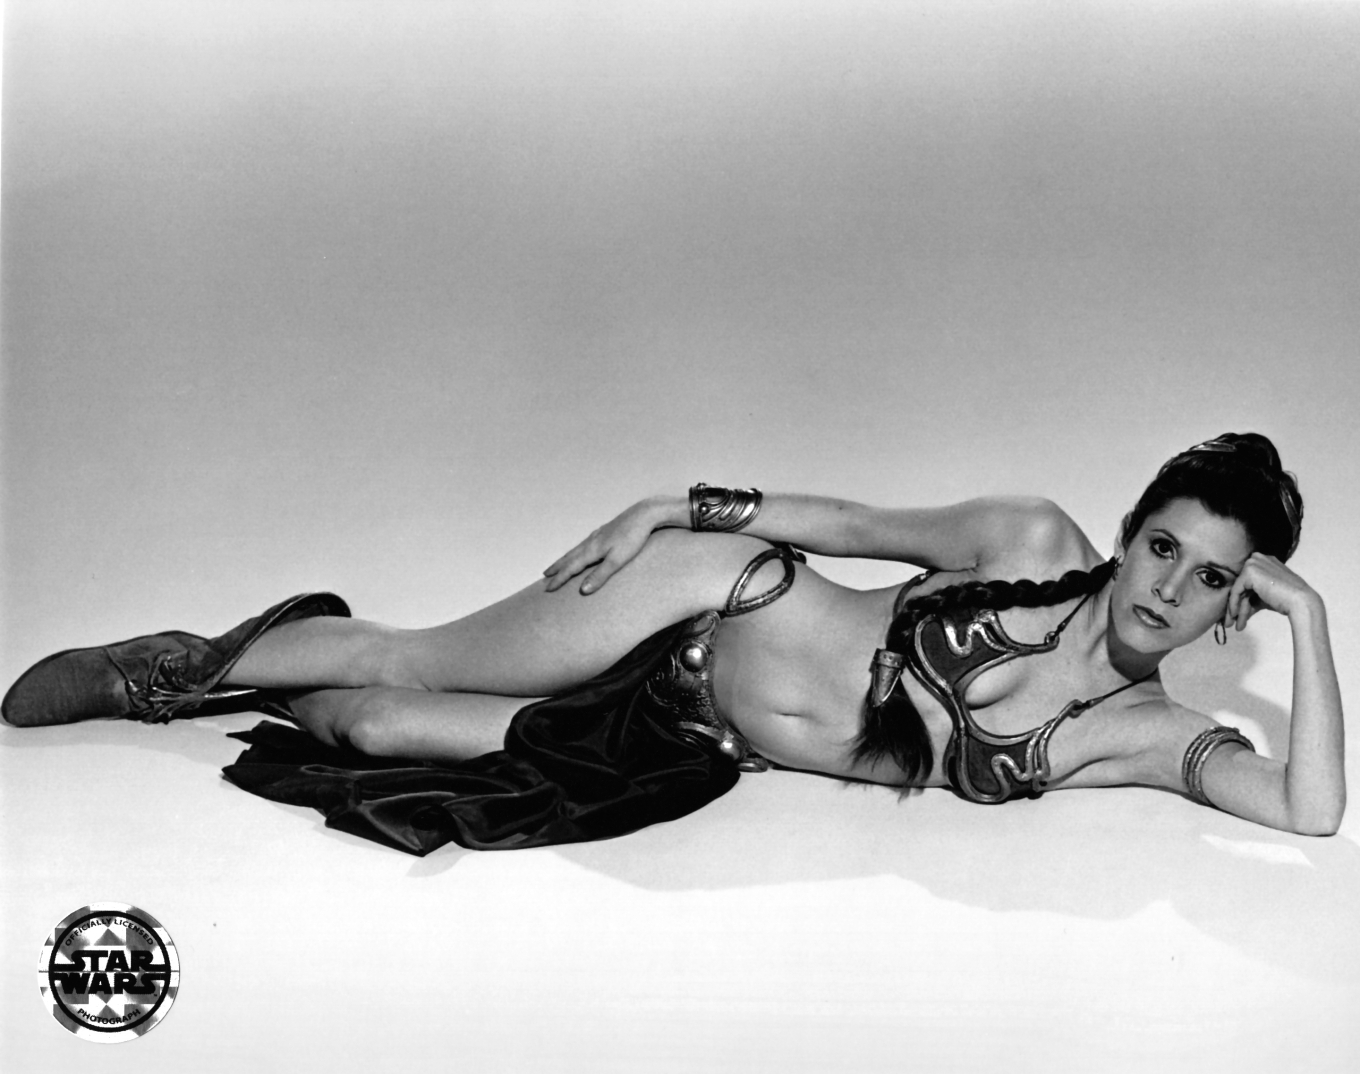 Rare-Slave-Leia-Images-star-wars-35052779-2880-2276